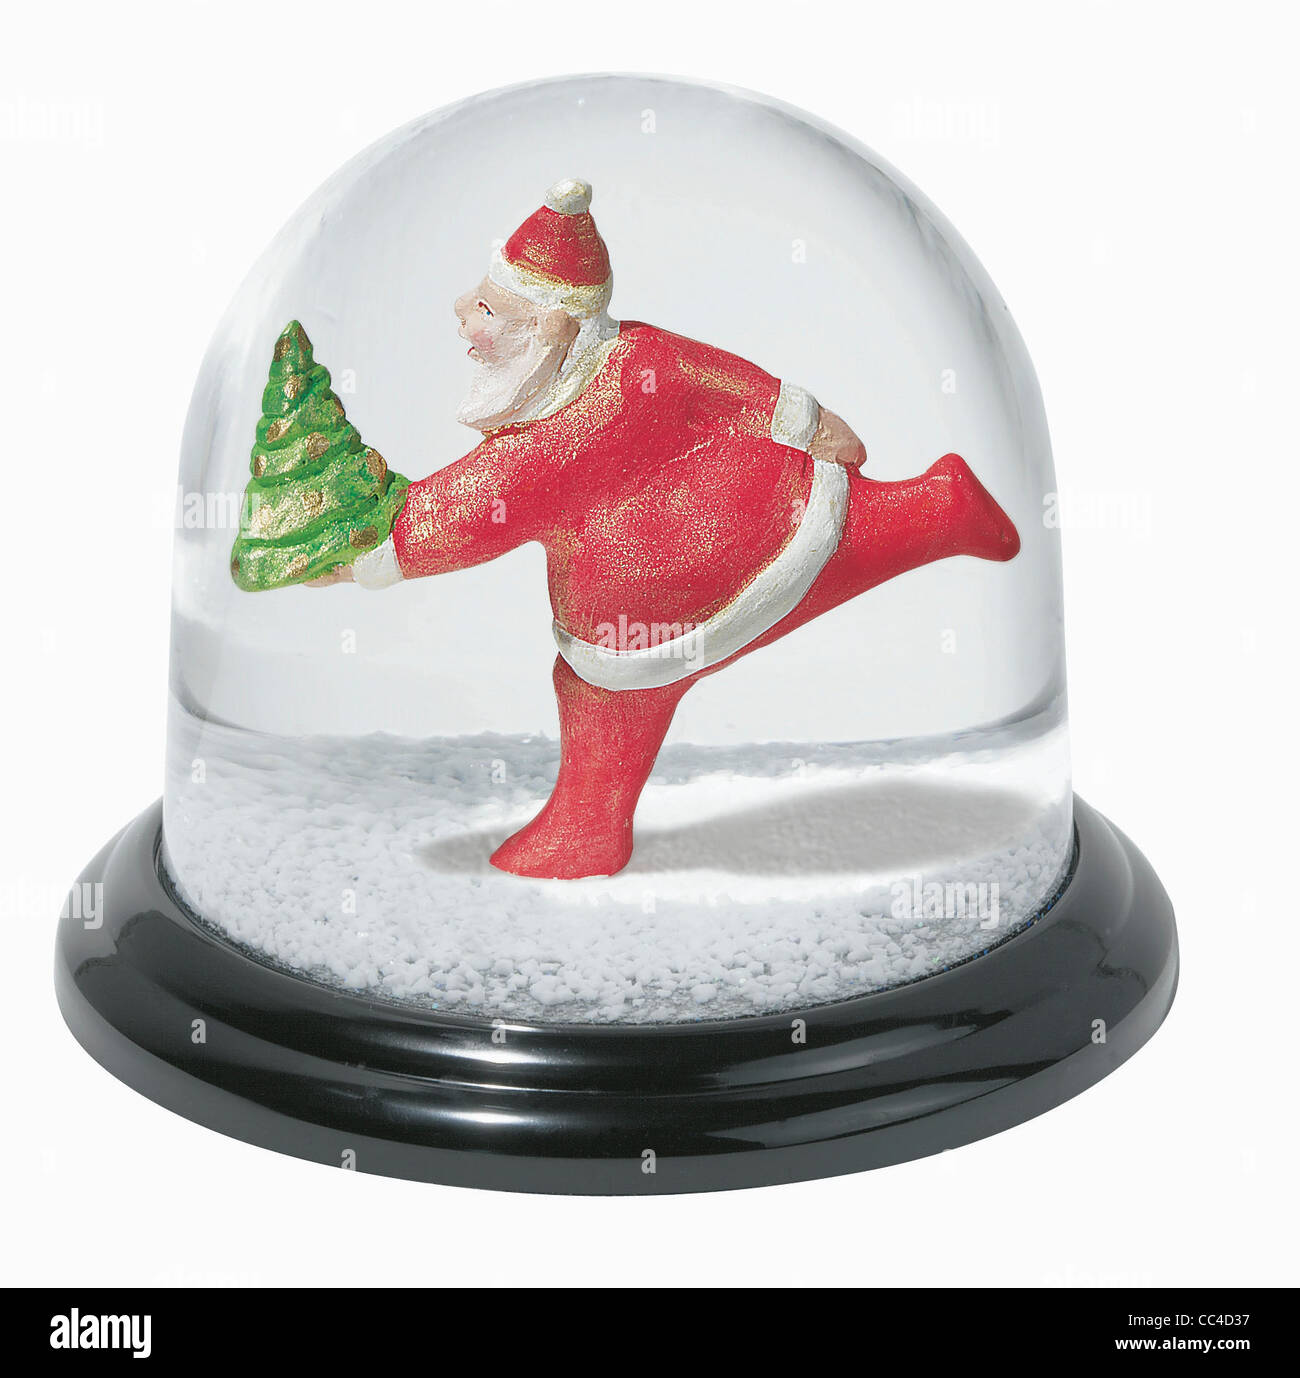 Collectibles - Snowglobe With Father Christmas. Koziol Company (Geschenkartikel, Erbach) - Stock Image